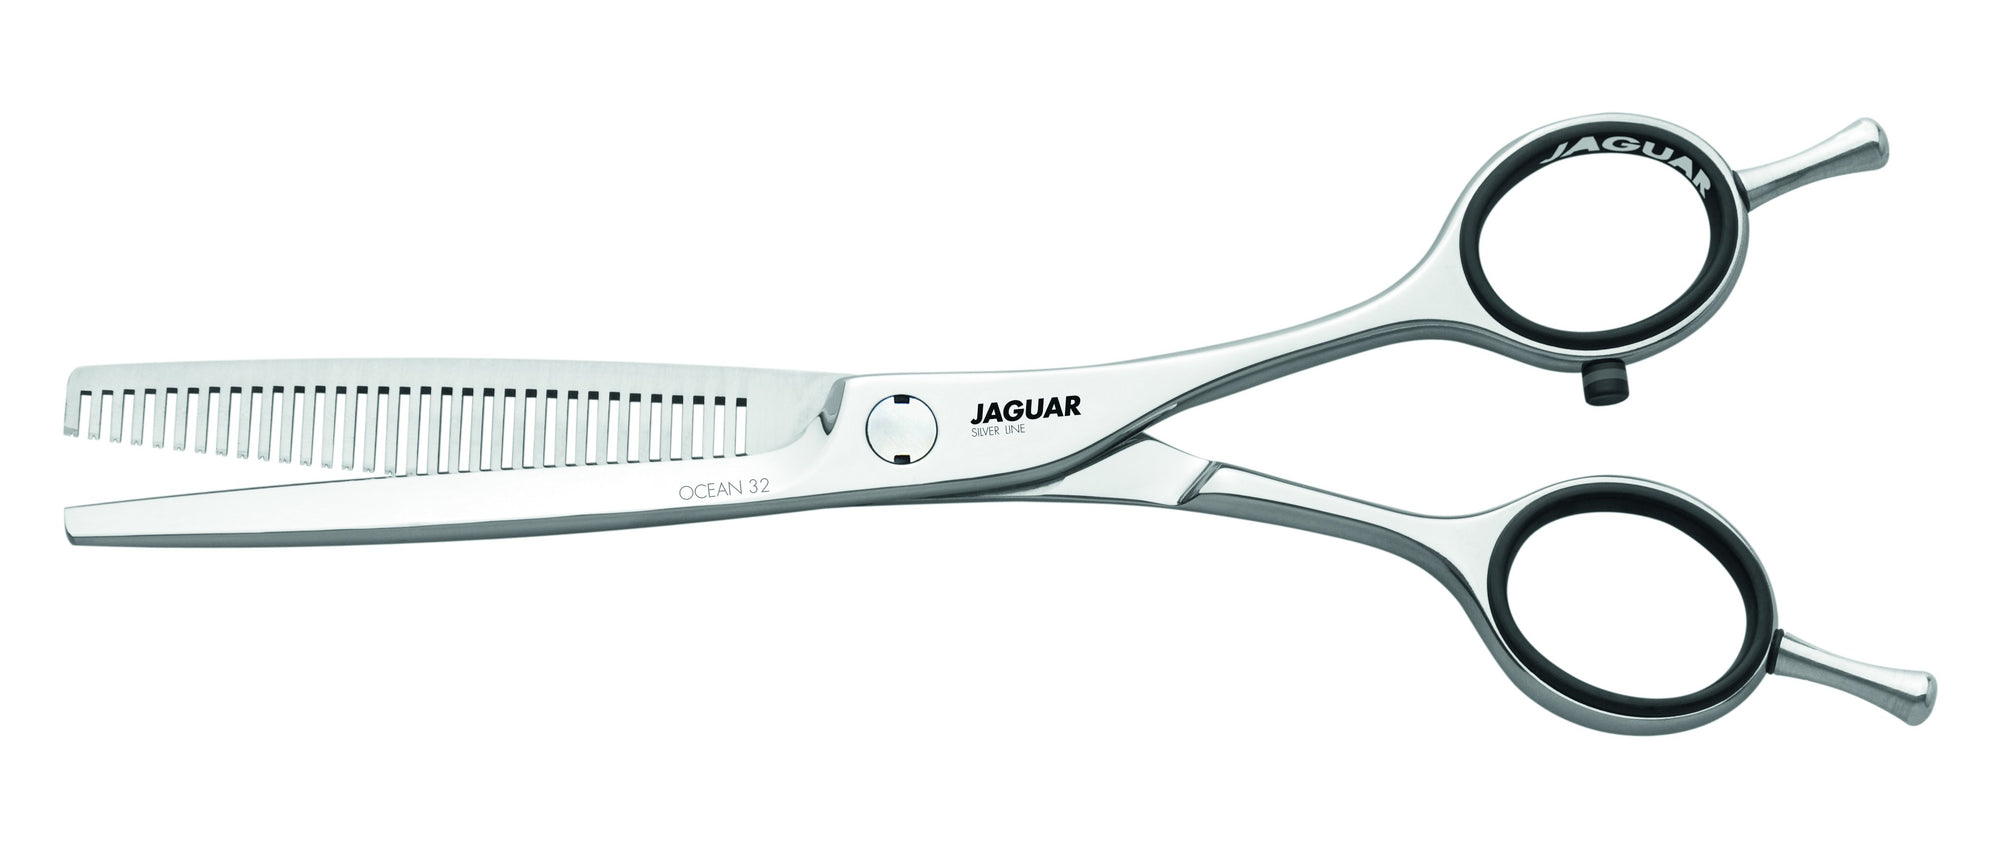 Jaguar Ocean 6 inch Thinner